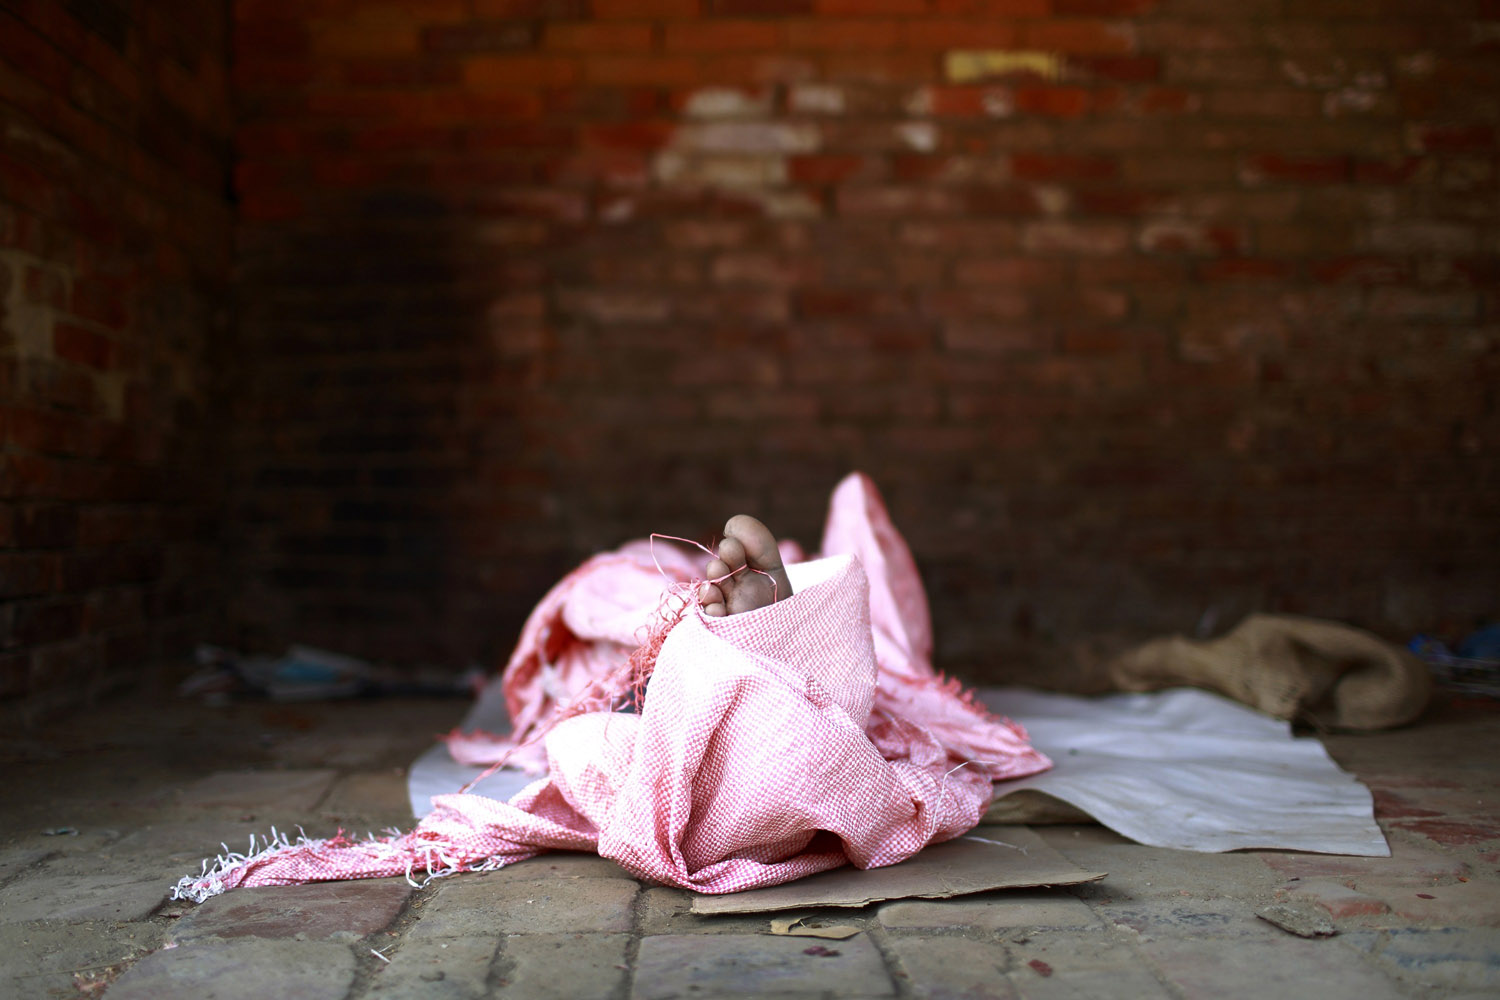 June 4, 2013. The toe of a street child pokes out from a sack as he sleeps along the streets of Lalitpur, Nepal.